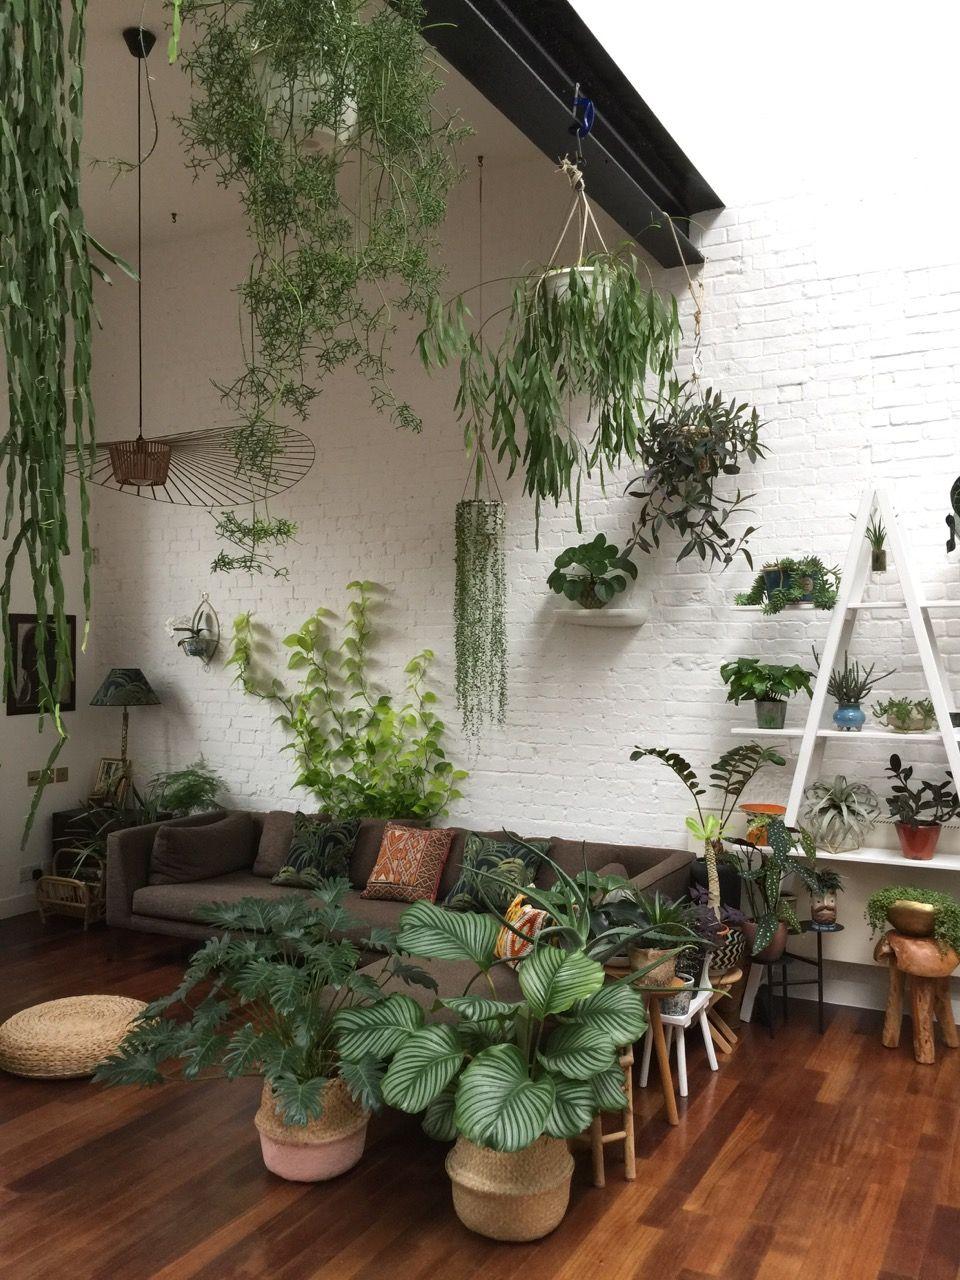 Gravity home plants - Interior decorating with plants ...